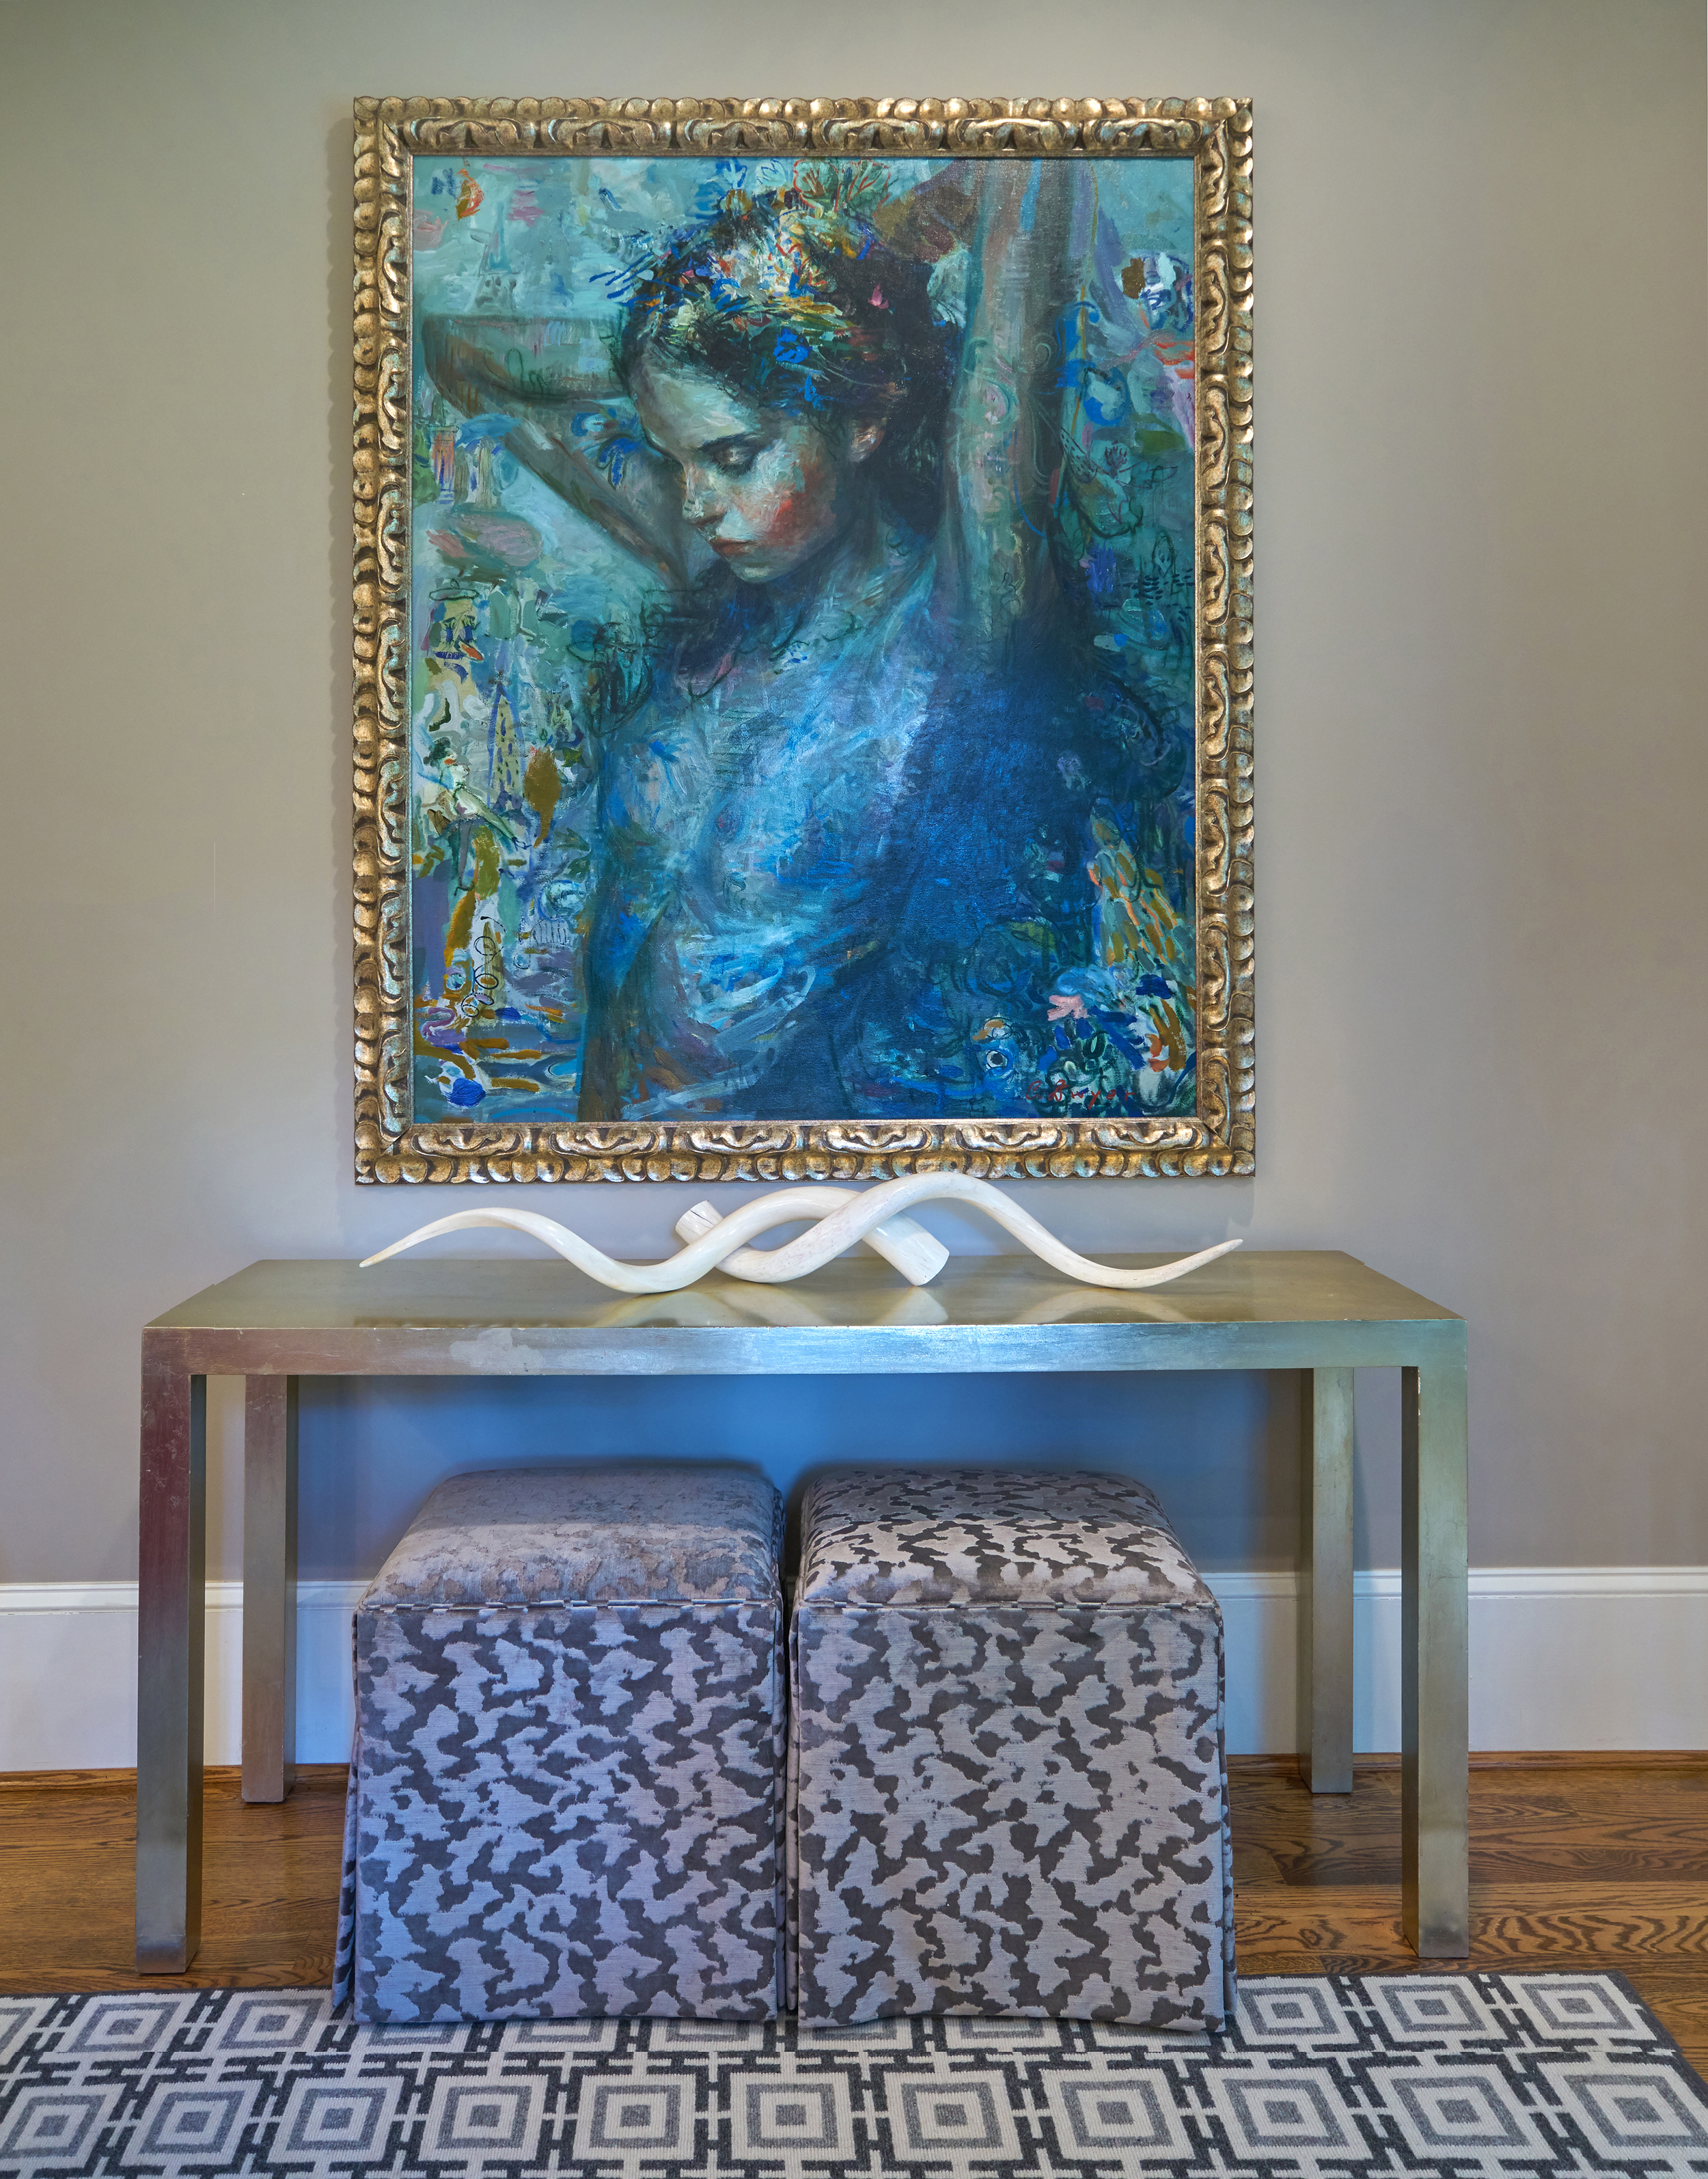 Beautiful art and vintage console exemplify perfection.